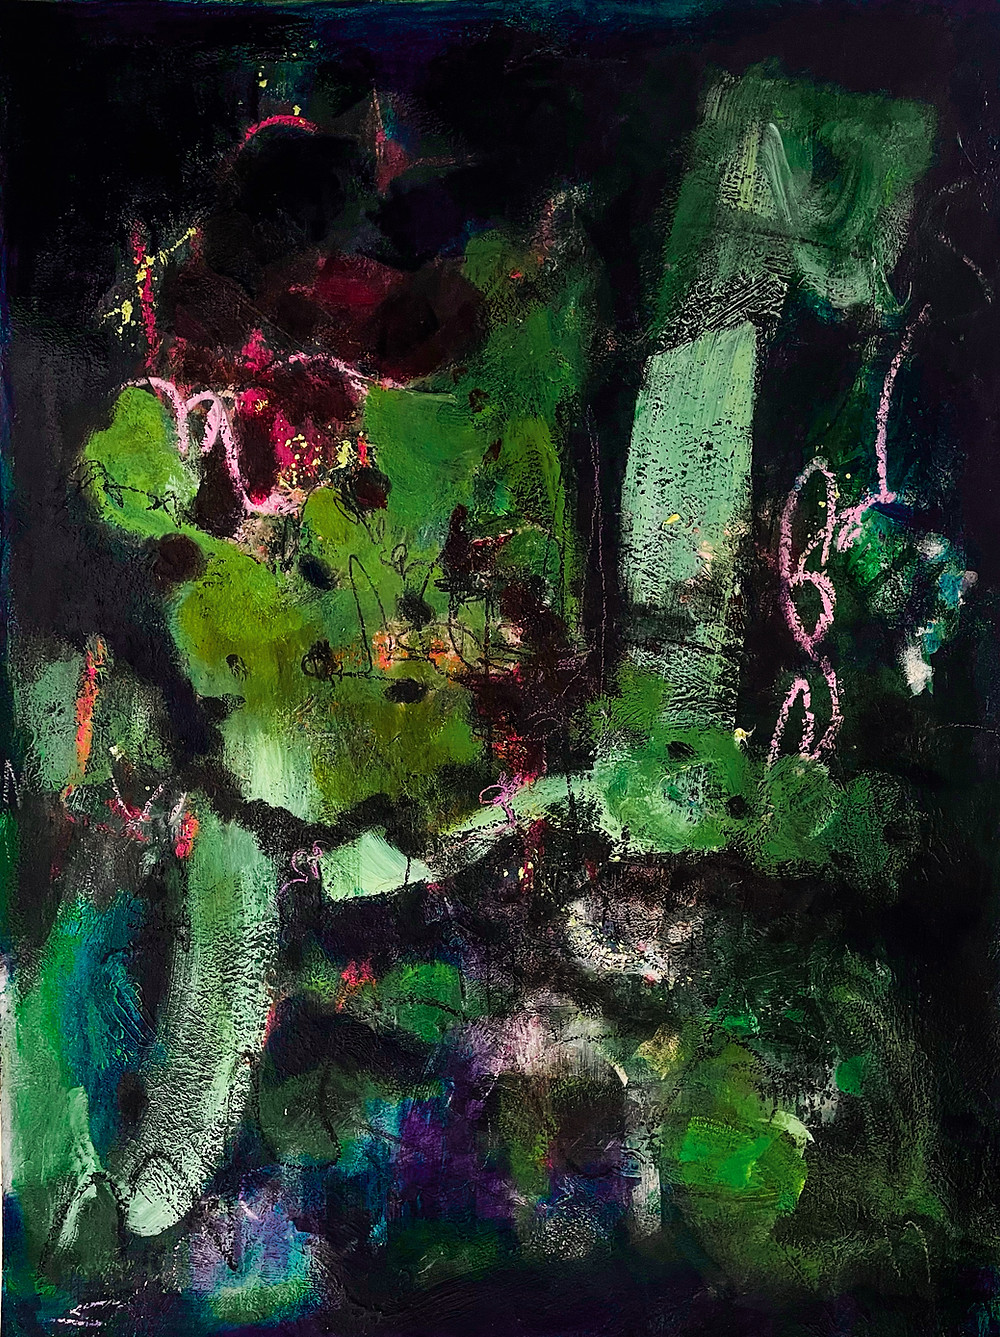 Oil painting. Abstract. Sweden 2021. Stockholm